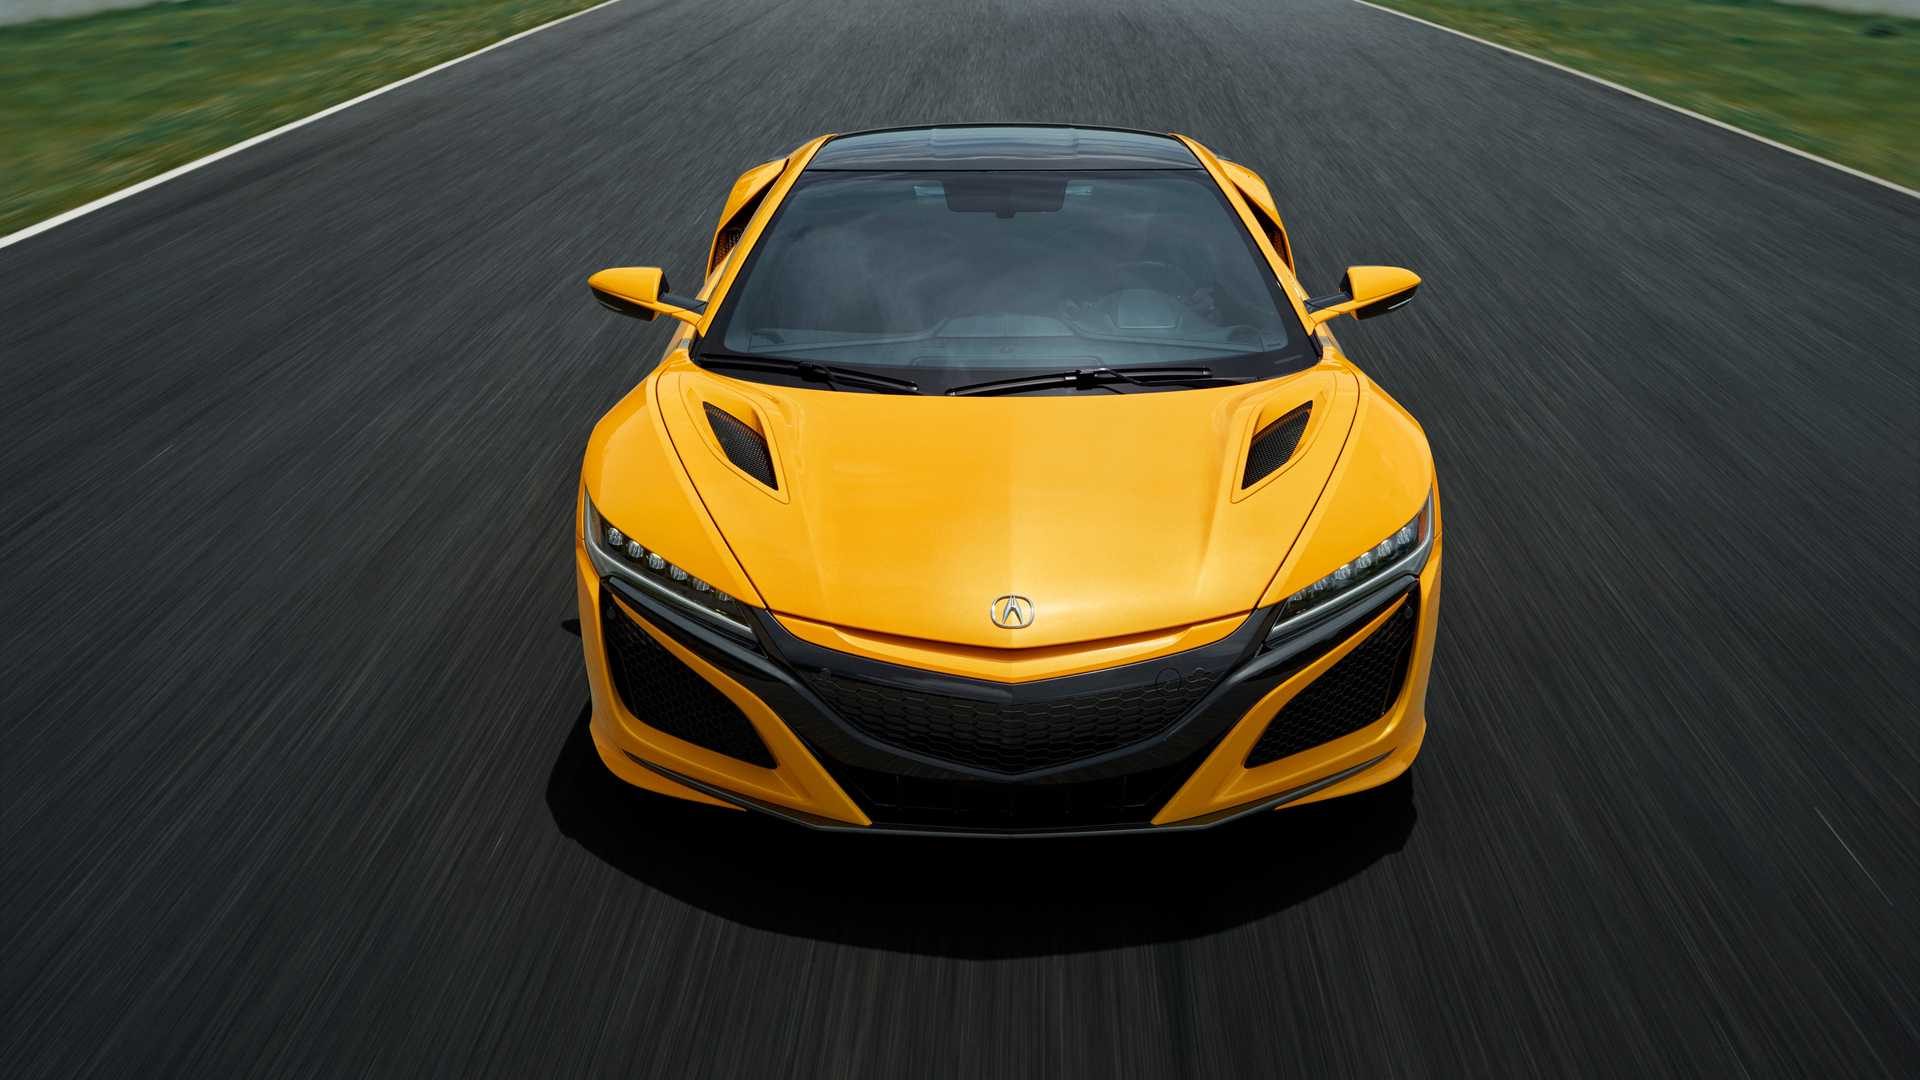 2020 Acura NSX Debuts Heritage Color - Indy Yellow Pearl ...